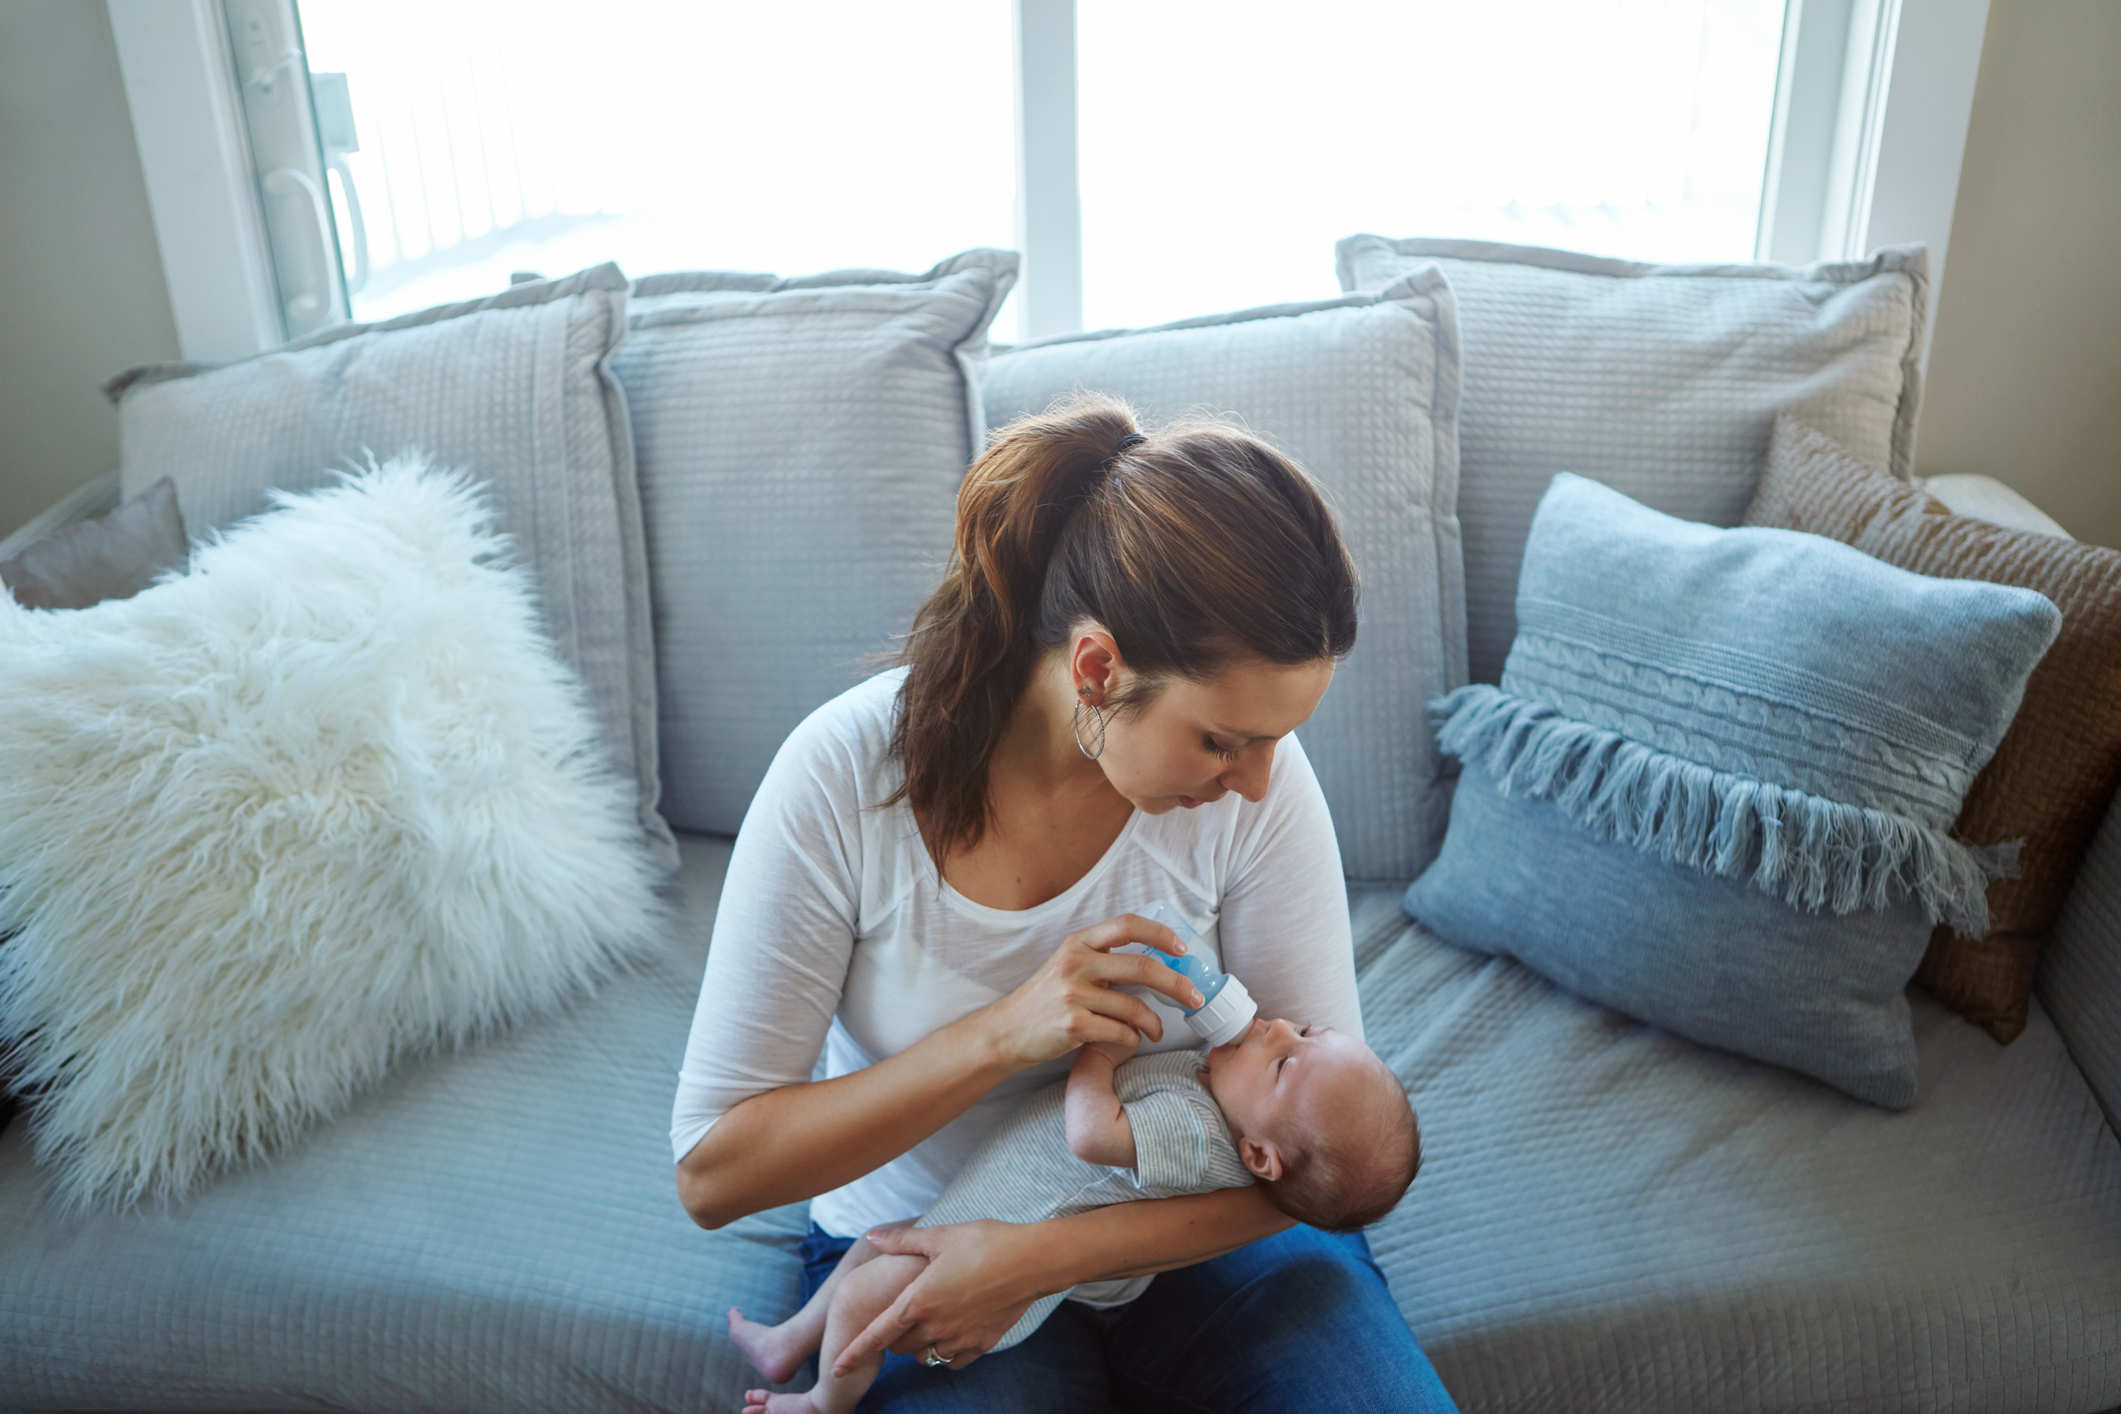 To the Formula Feeding Mom During World Breastfeeding Week